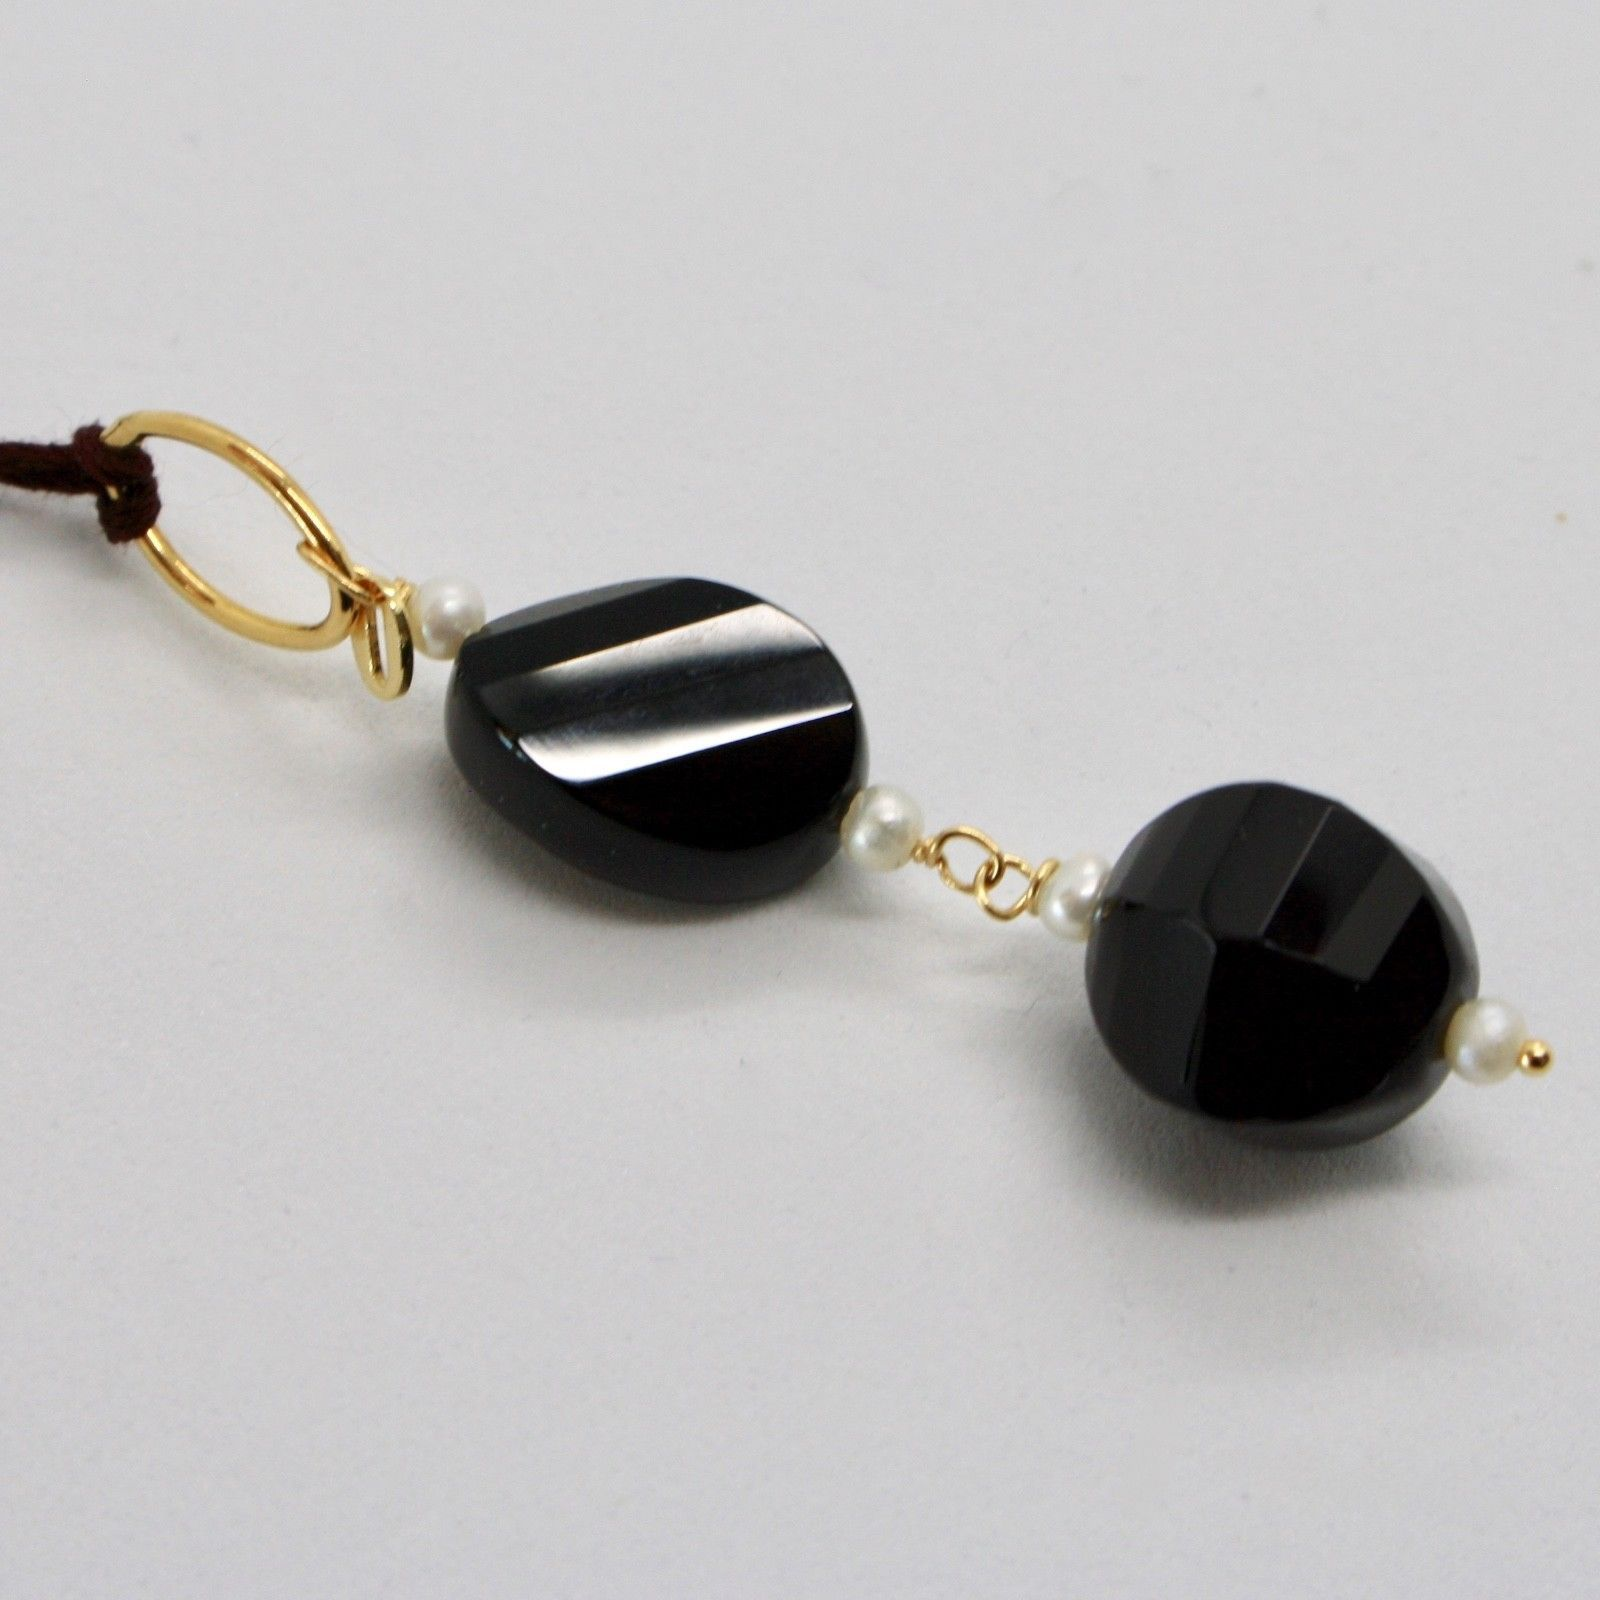 PENDANT YELLOW GOLD 18K 750 ONYX BLACK AND MINI PEARLS OF WATER DOLCE